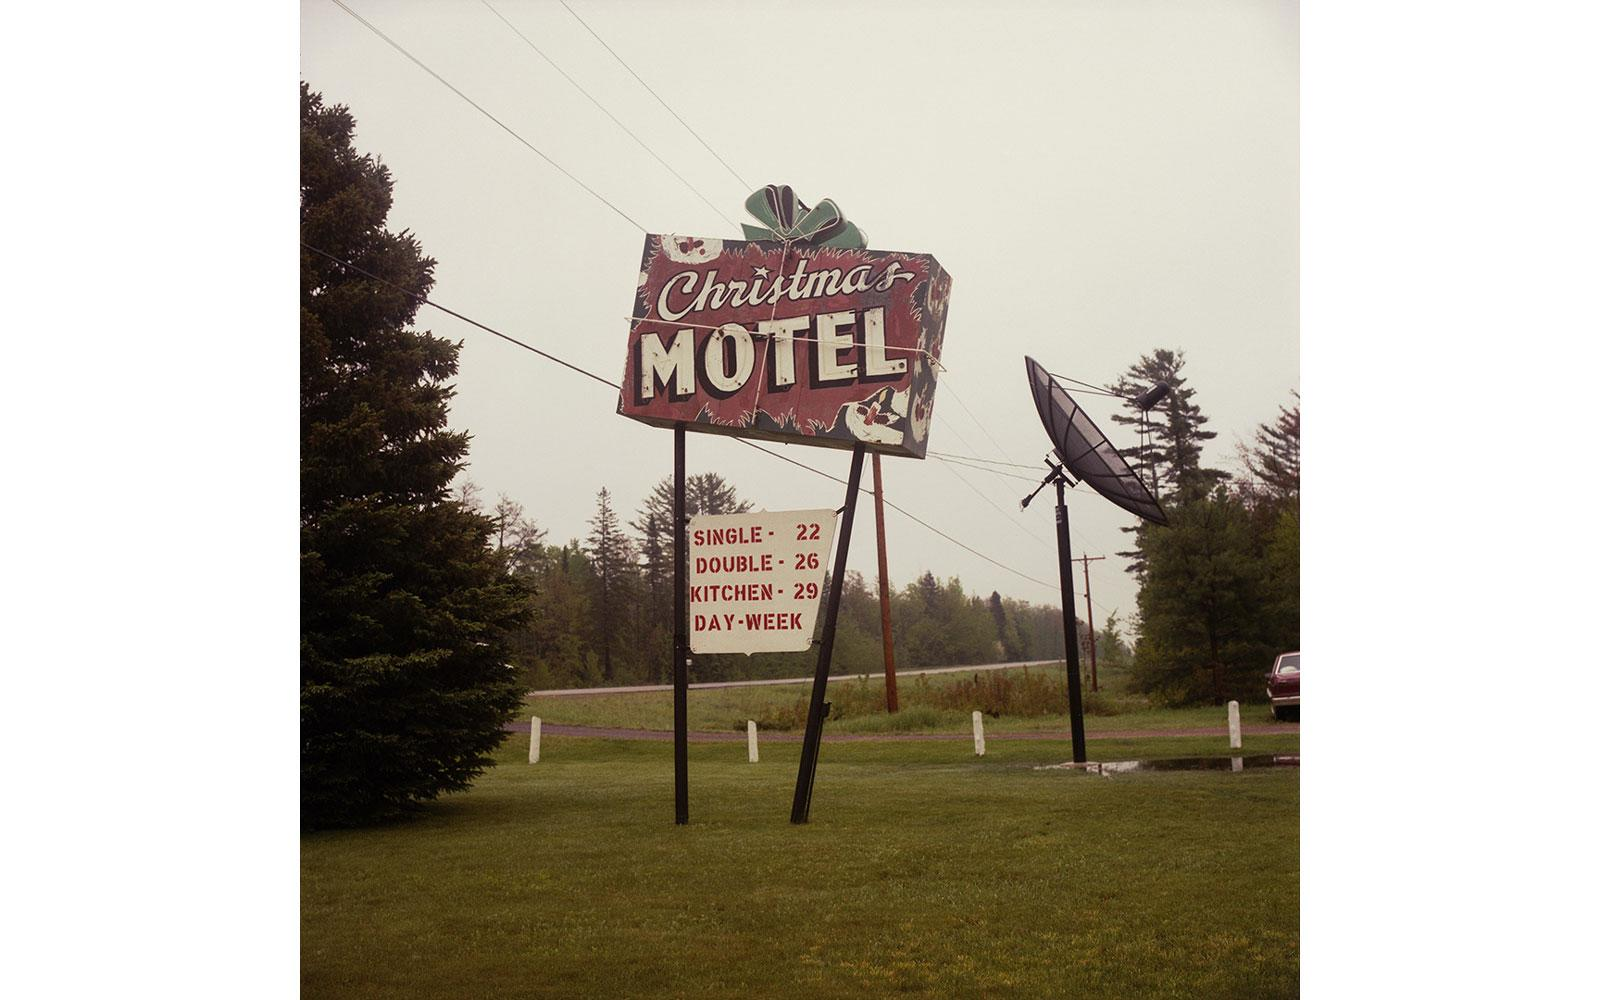 Vintage Motel Signs Reveal America's Love Affair With the Road